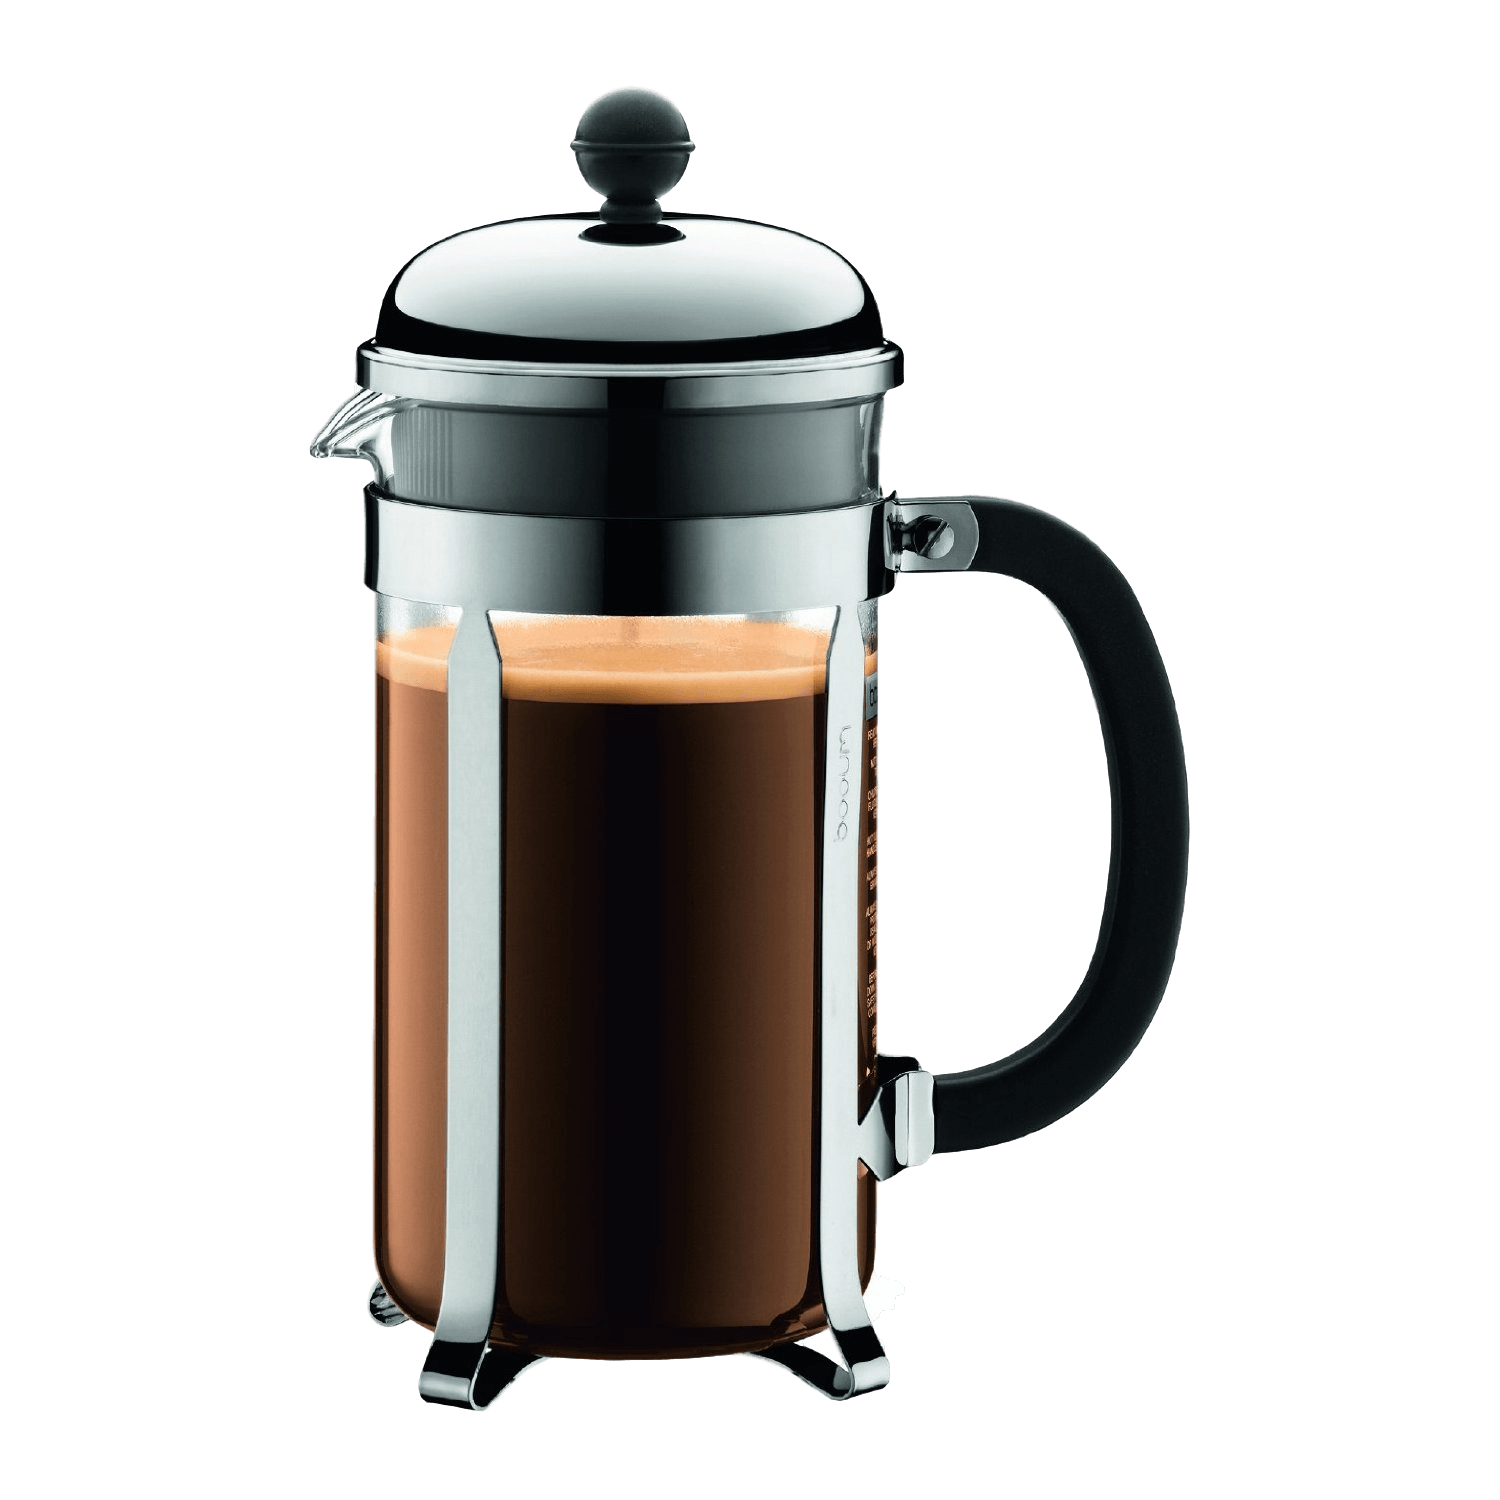 Coffee Press Better Than Coffee Maker : AeroPress Vs French Press Press coffee Maker Showdown - Home Grounds